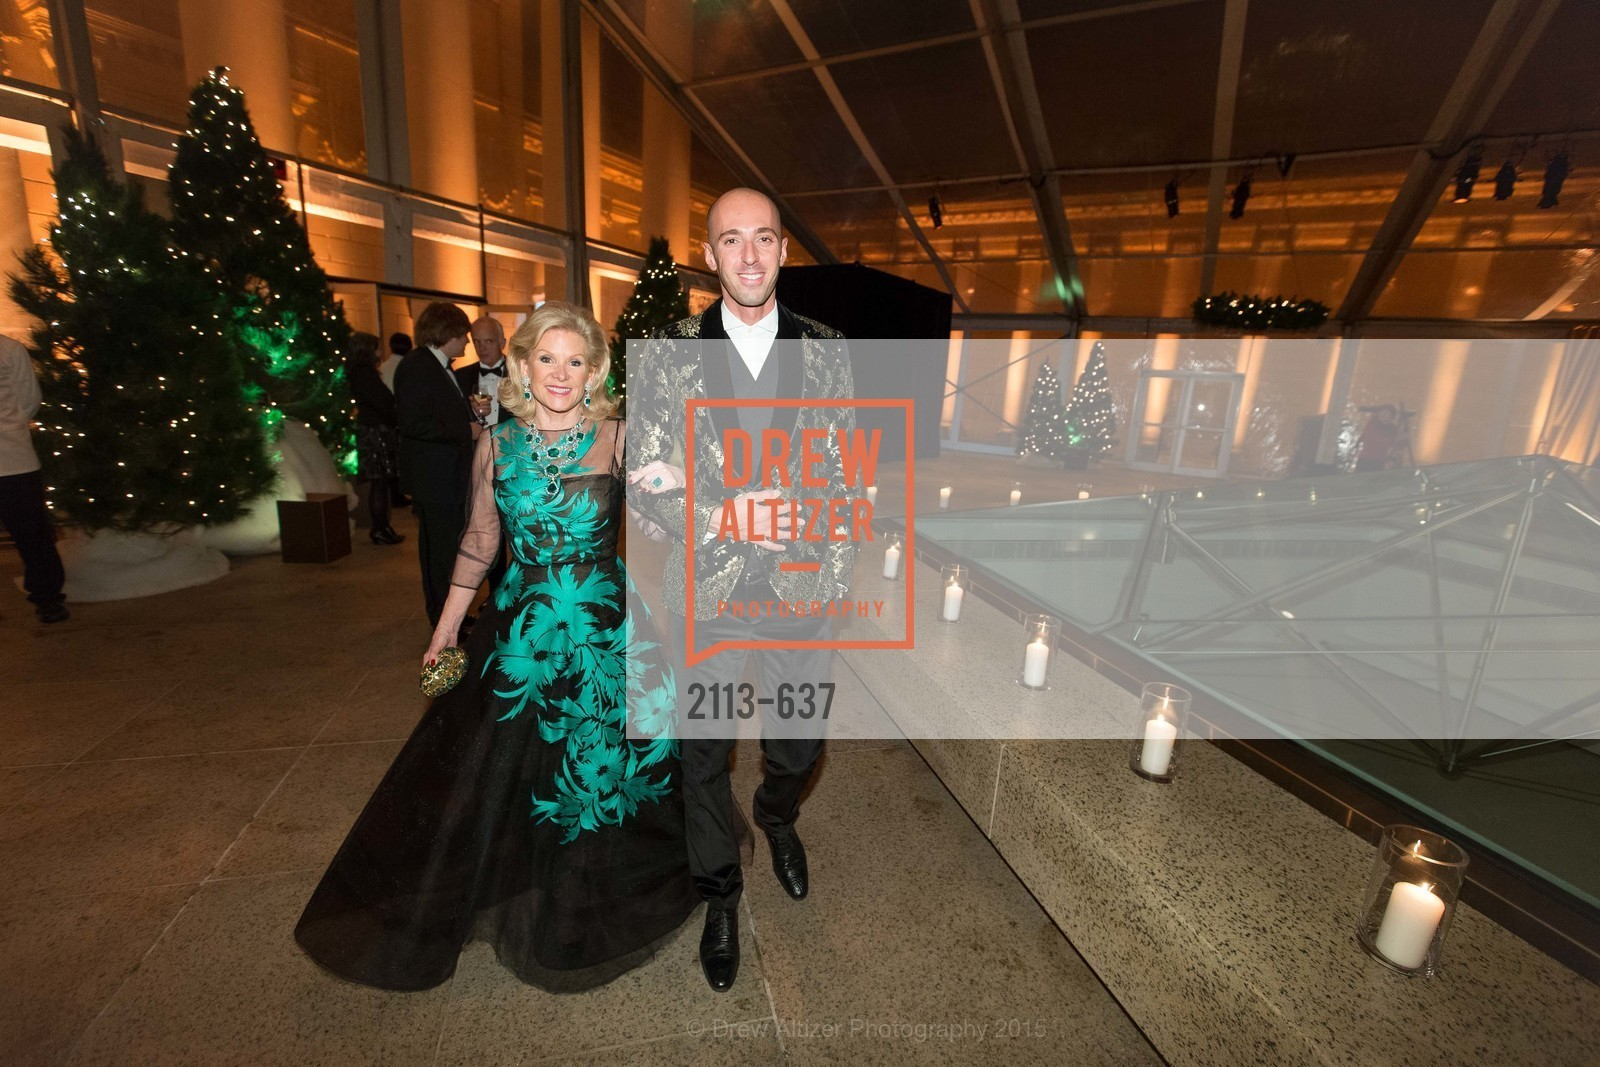 Dede Wilsey, Valerio D'Ambrosio, AN ELEGANT EVENING Presented by the Fine Arts Museums of San Francisco, Legion of Honor, Court of Honor. 100 34th Ave, December 8th, 2015,Drew Altizer, Drew Altizer Photography, full-service agency, private events, San Francisco photographer, photographer california